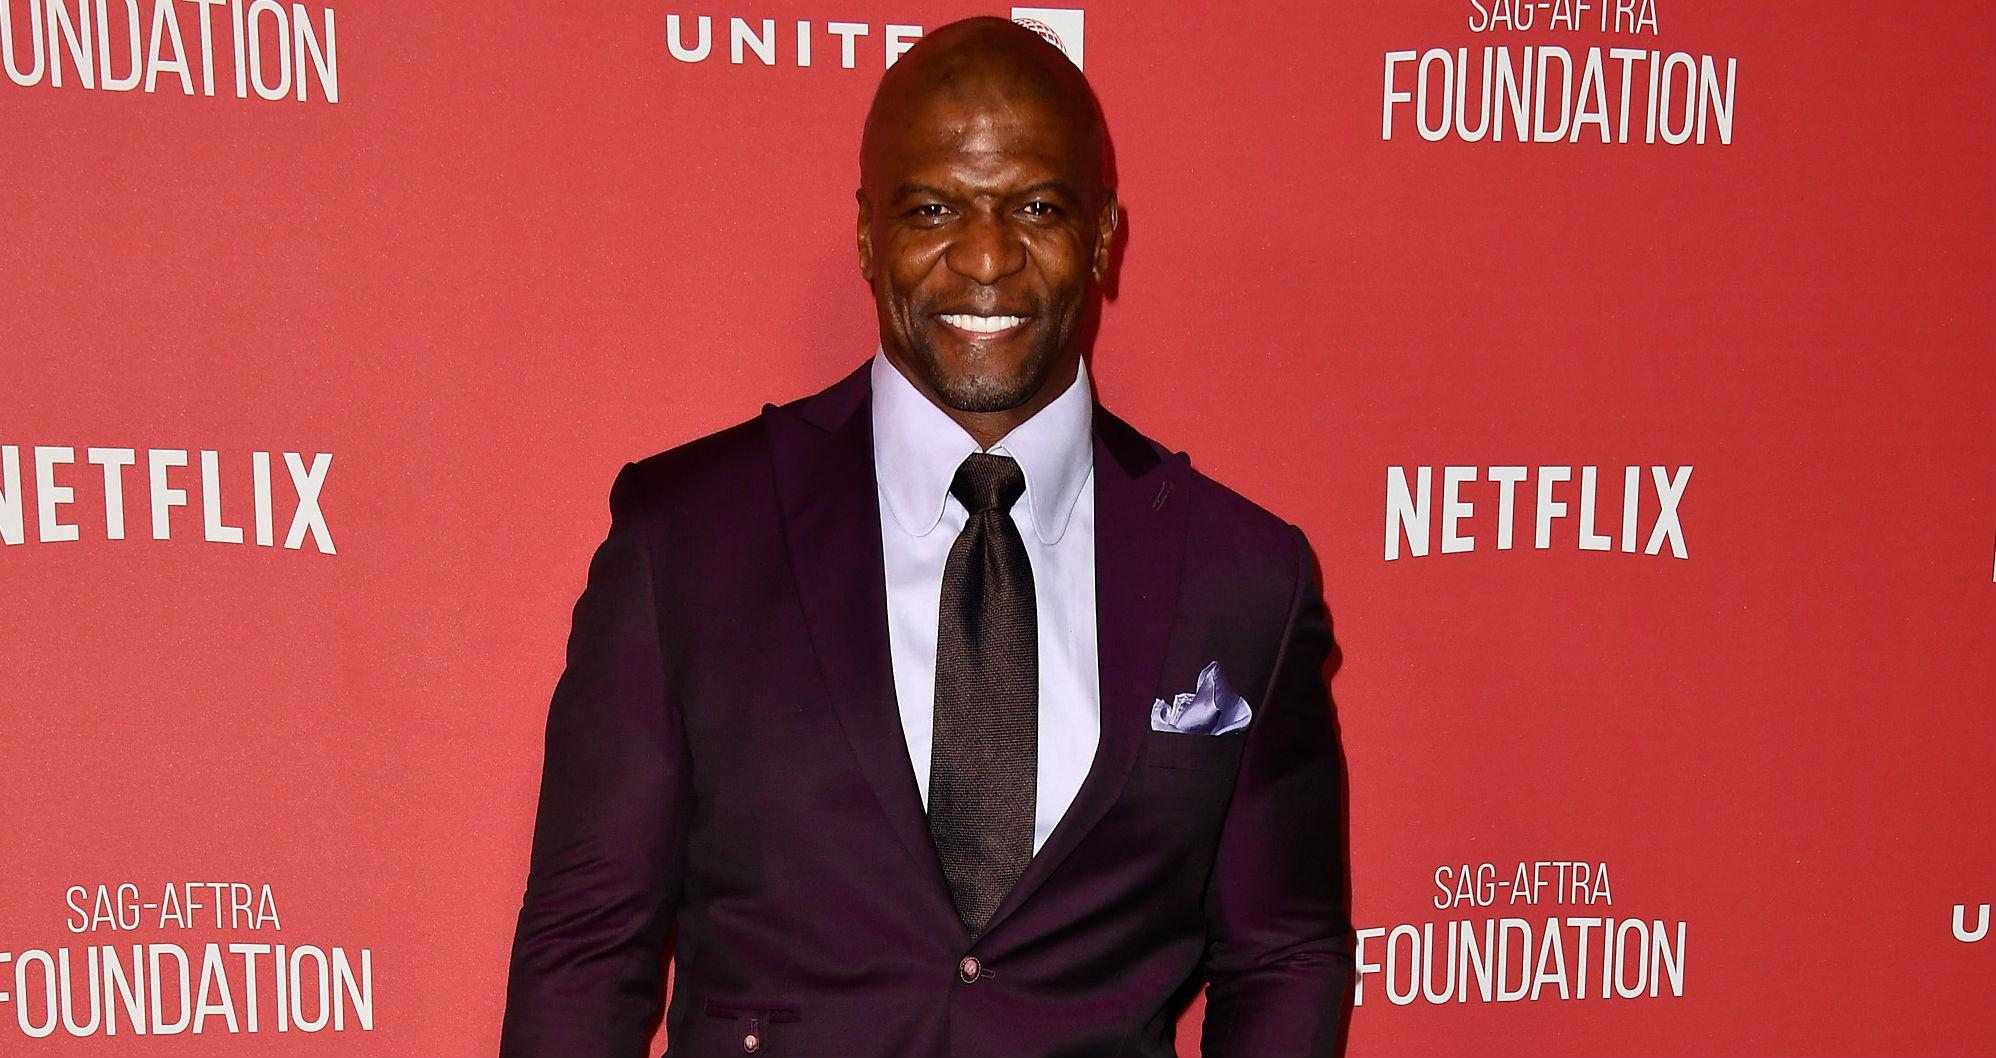 Terry Crews names WME exec as man who allegedly sexually assaulted him